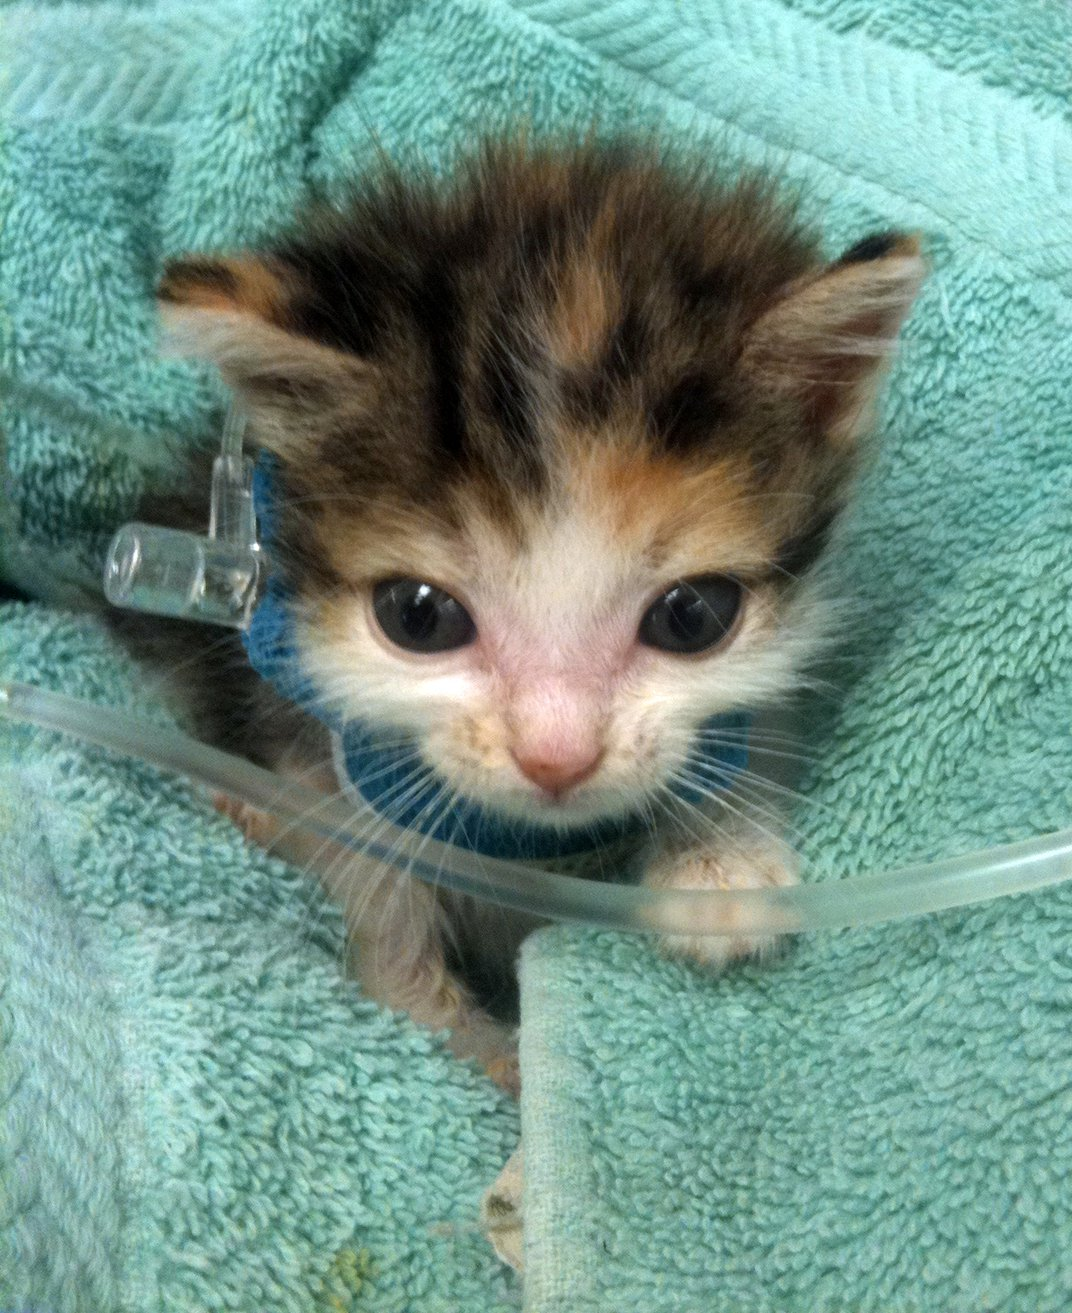 This Tiny Kitten Presented To My Clinic Very Hypoglycemic And Thus Needed To Stay For Some Iv Fluids With Dextrose He Tolerated Treatment Very Well Despite His Jugular Catheter Smithsonian Photo